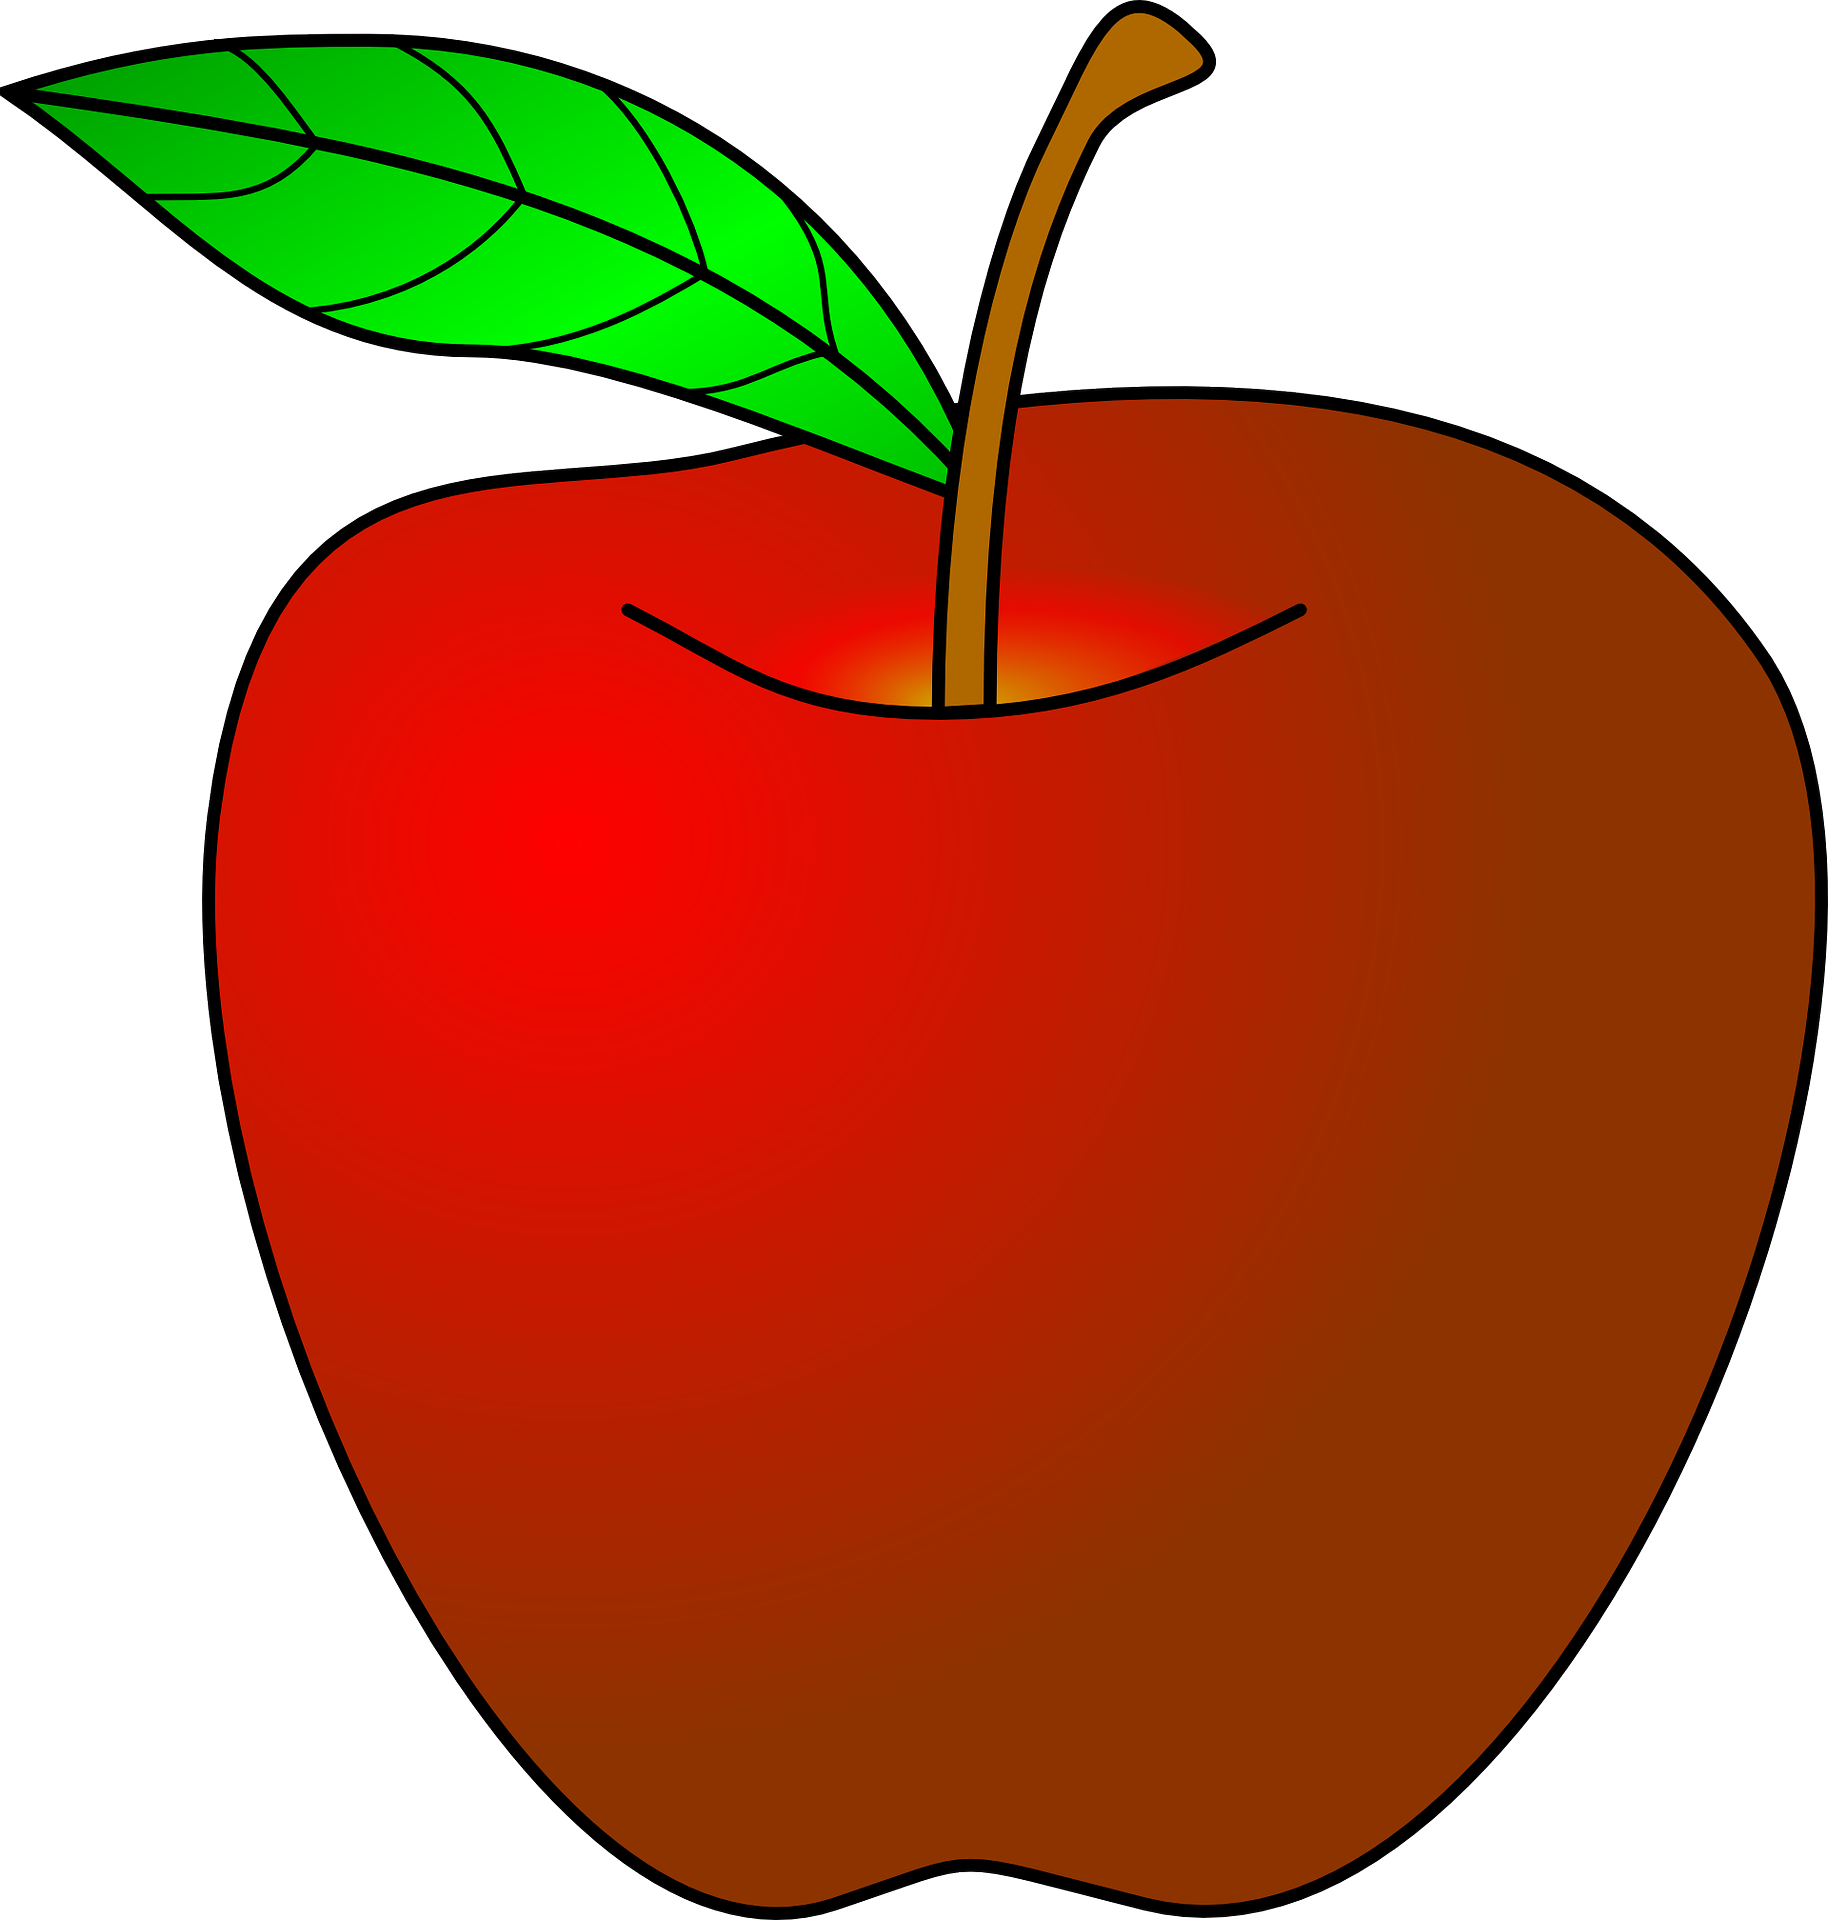 Drawing apple red. Of fruit with ripe